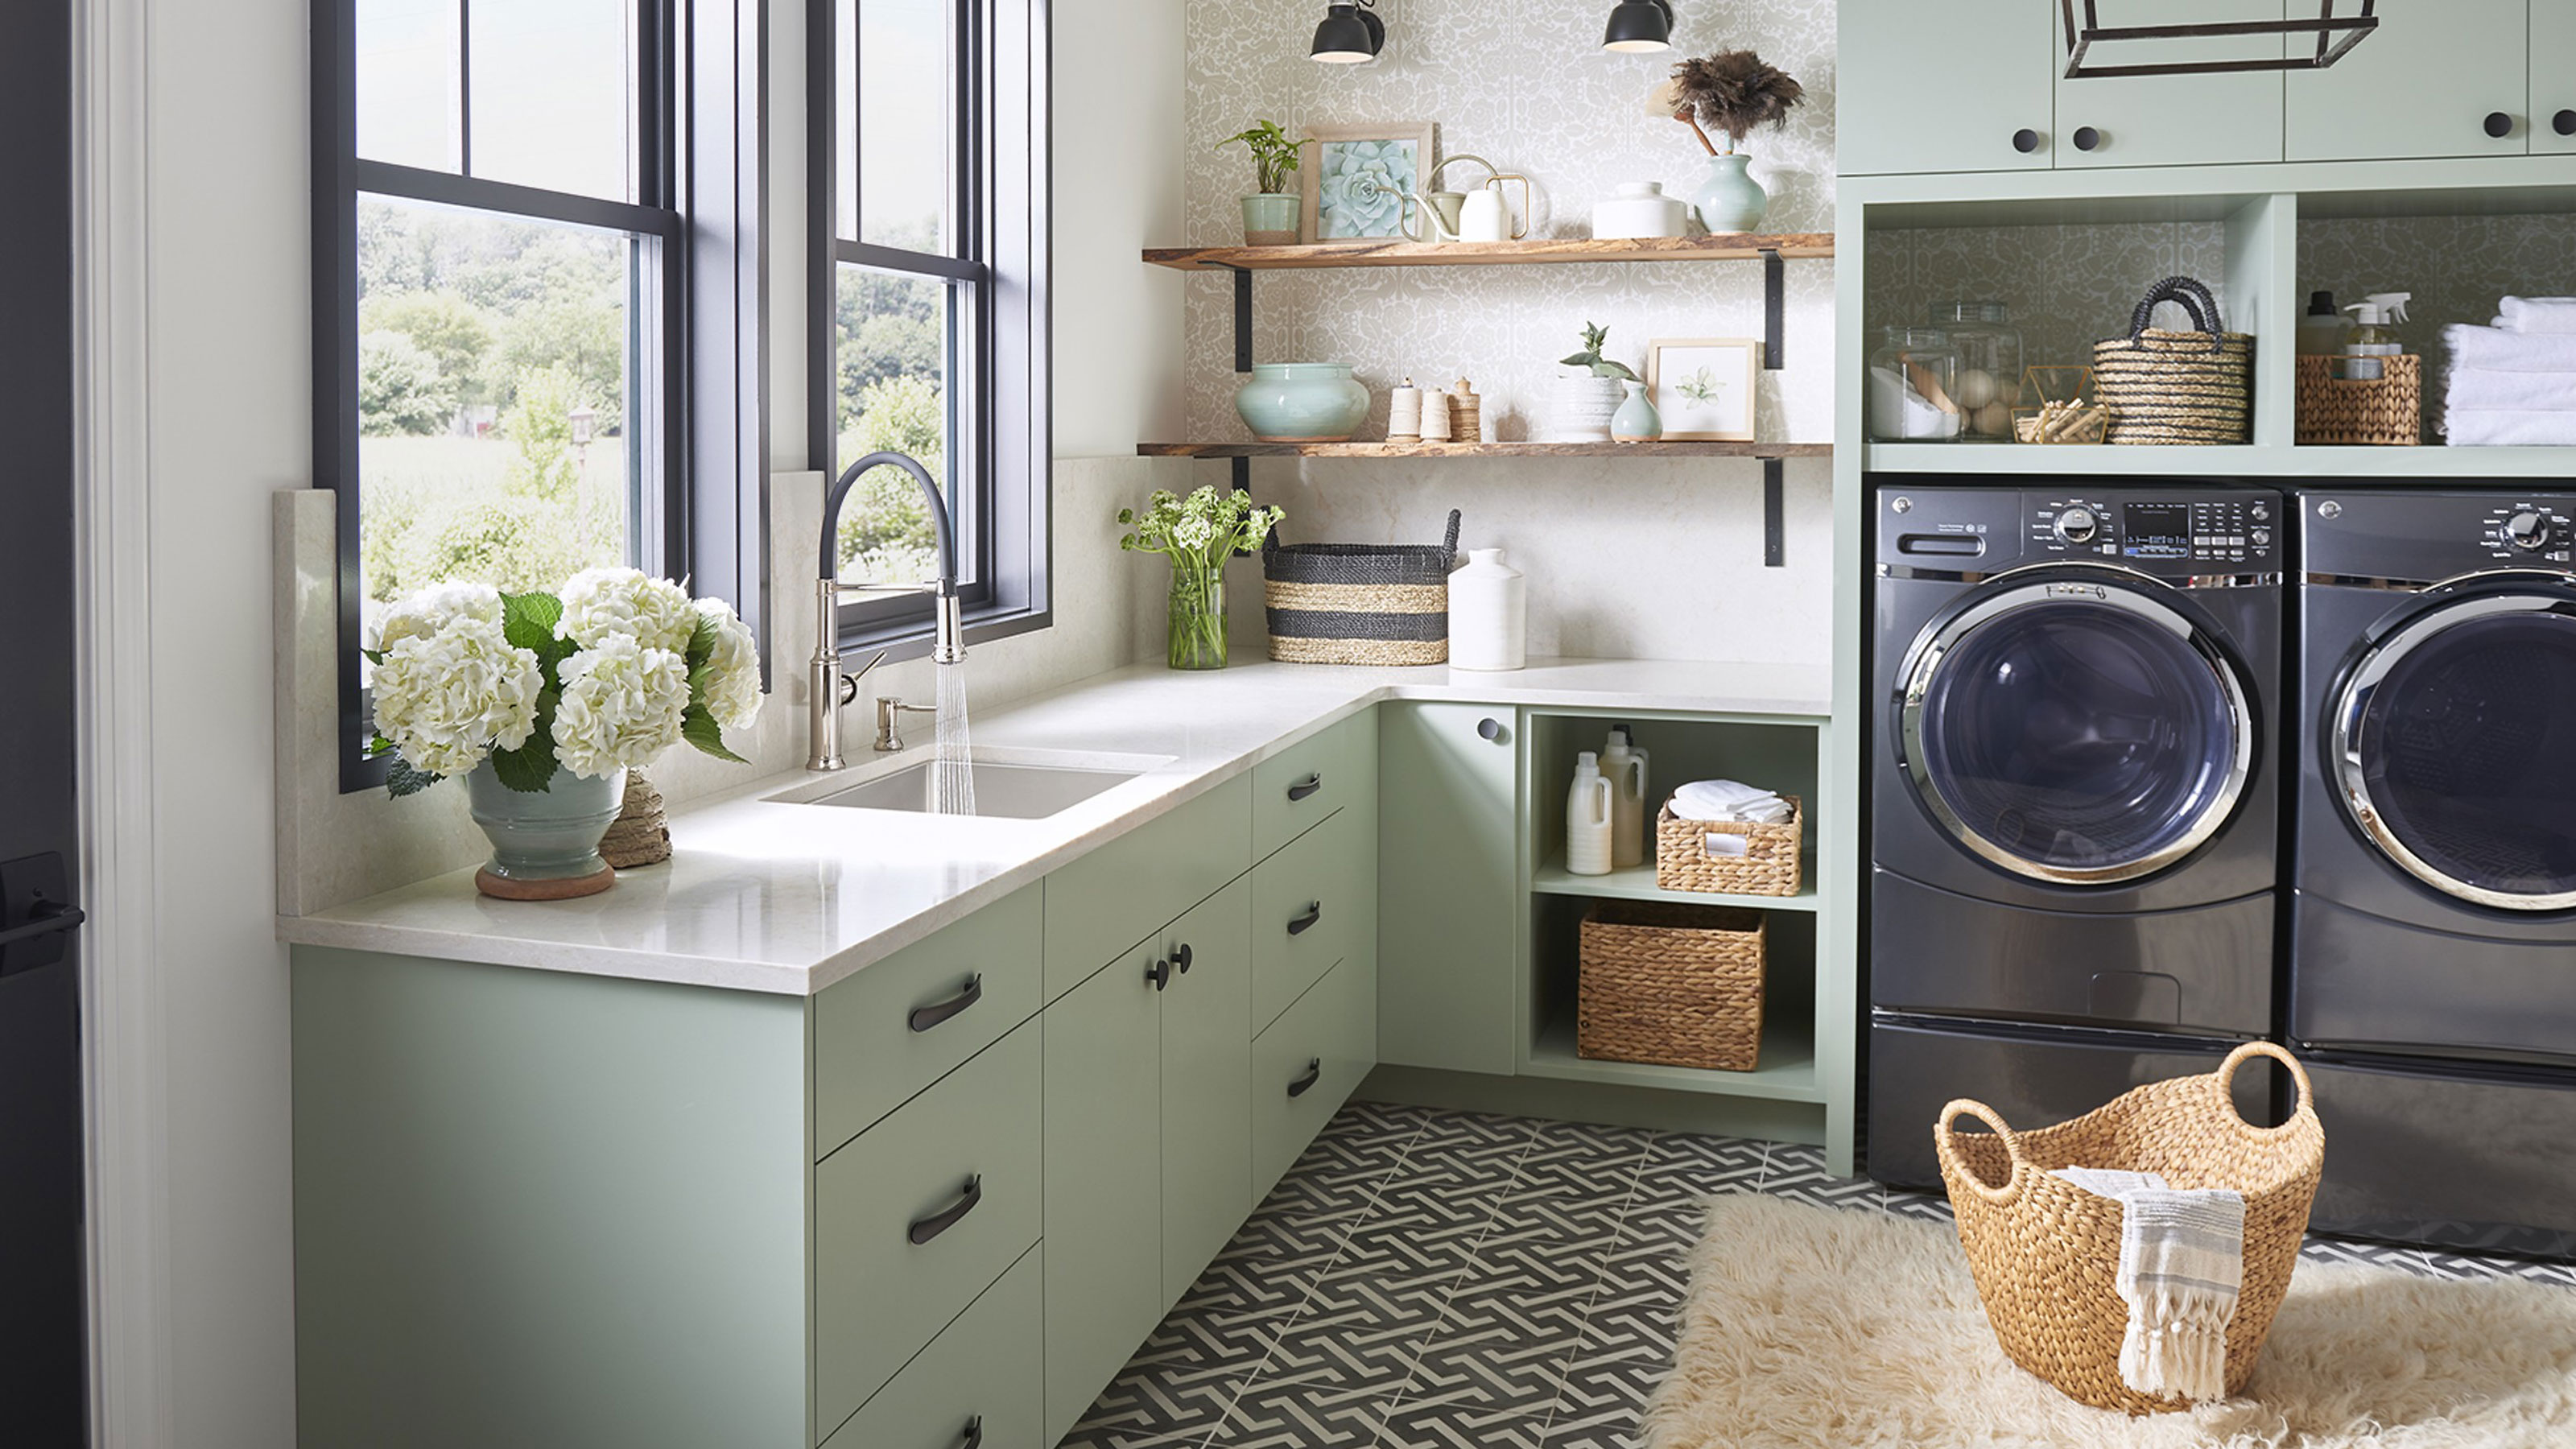 Laundry room design mistakes and how to avoid them   Real Homes